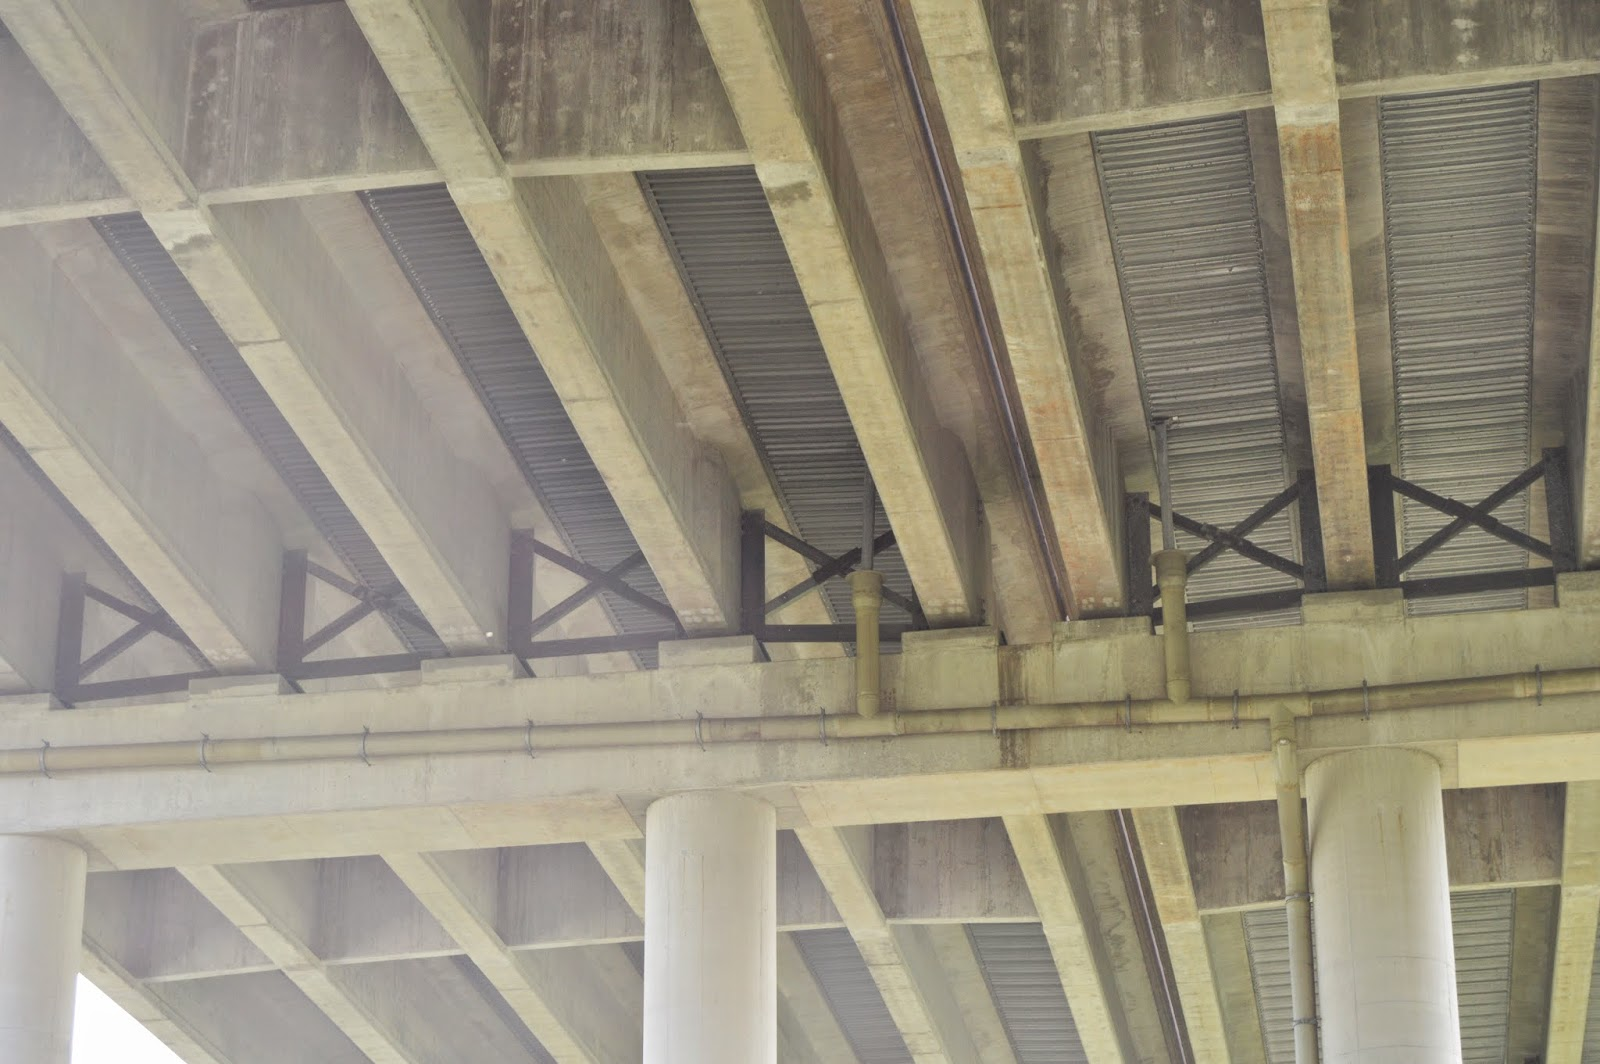 Industrial History August 2014 Bridge Camber Diagram Furthermore Warren Truss Further I Had Noticed That The Girders Looked Like Concrete Instead Of Steel So Took A Picture Very Little Sky In It To Get Good Exposure